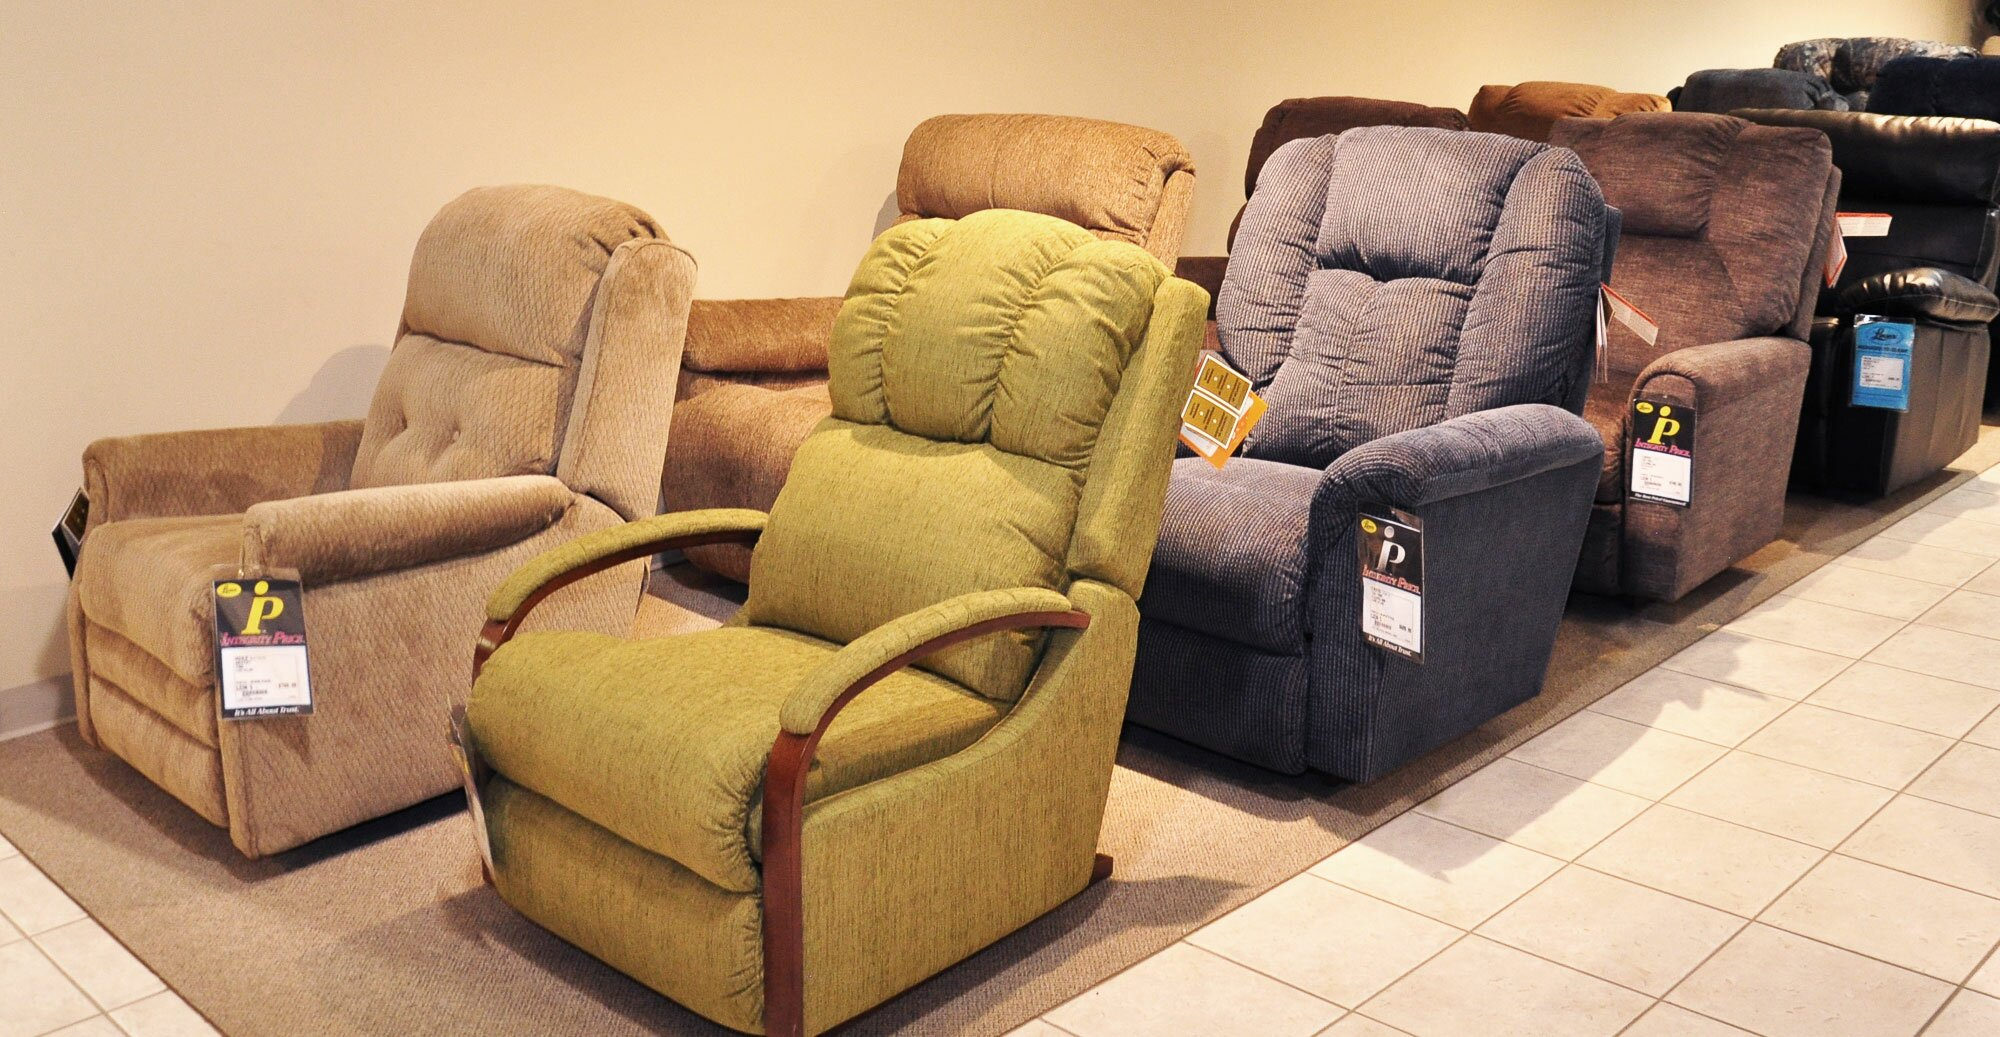 Lazy Boy Clearance | Lazy Boy Chairs Price | La-z-boy Recliners on Sale